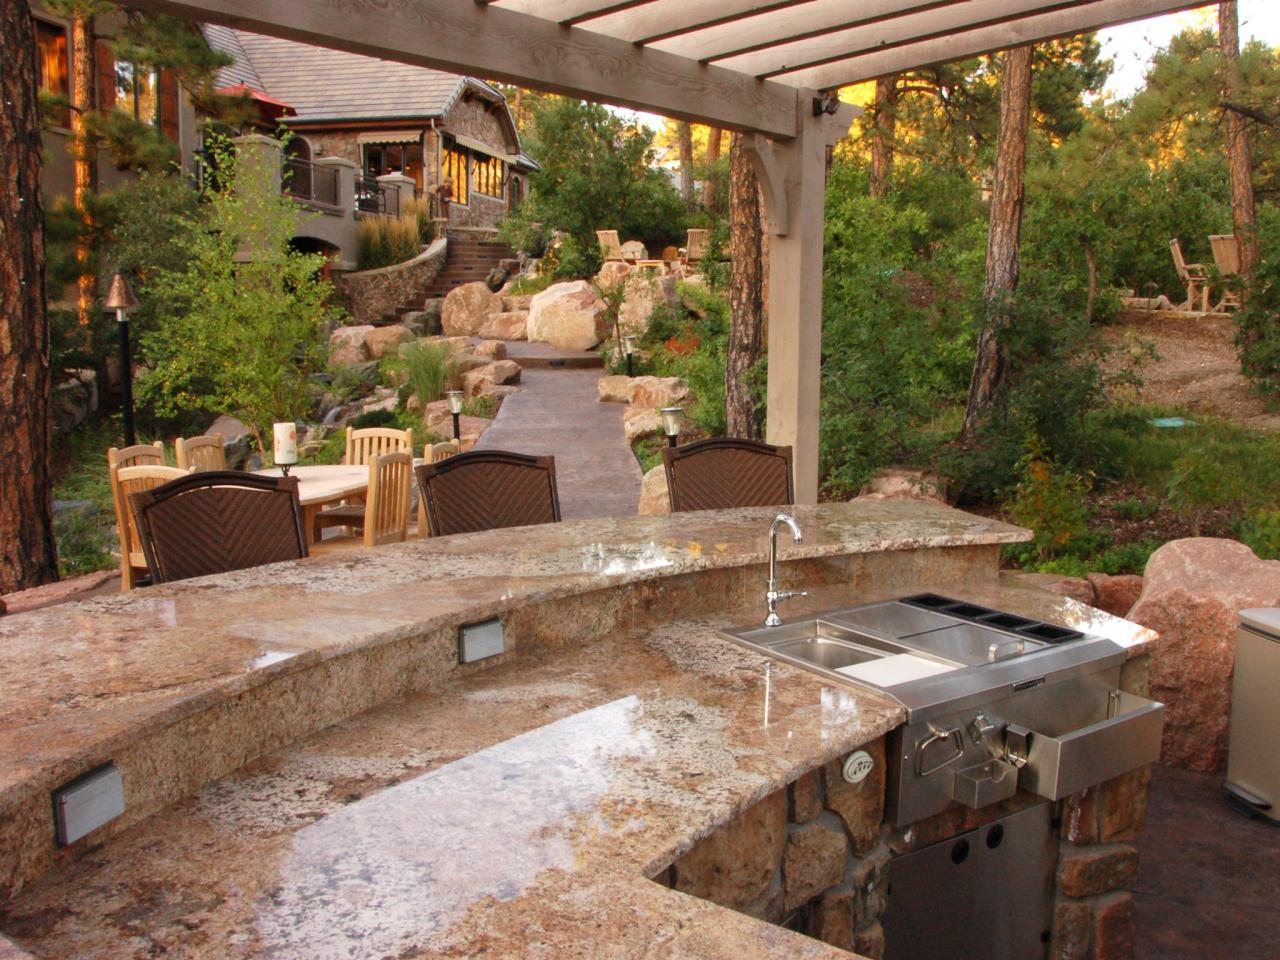 Outdoor kitchen design ideas pictures tips expert for Outdoor kitchen ideas plans